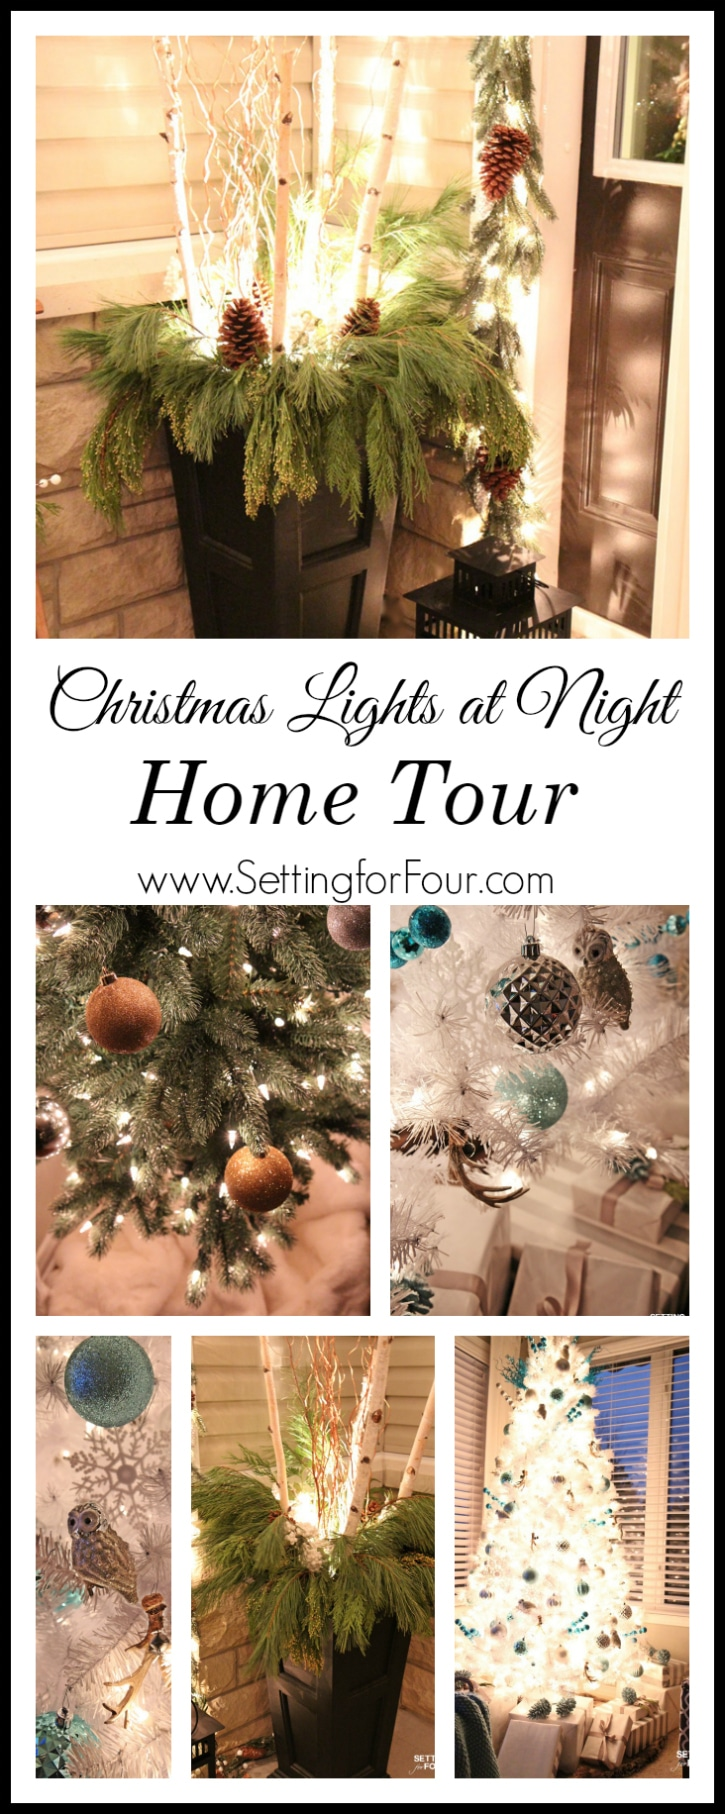 See this gorgeous Christmas Lights at Night Home Tour! This design bloggers shares decor tips and her home all lit up at night!